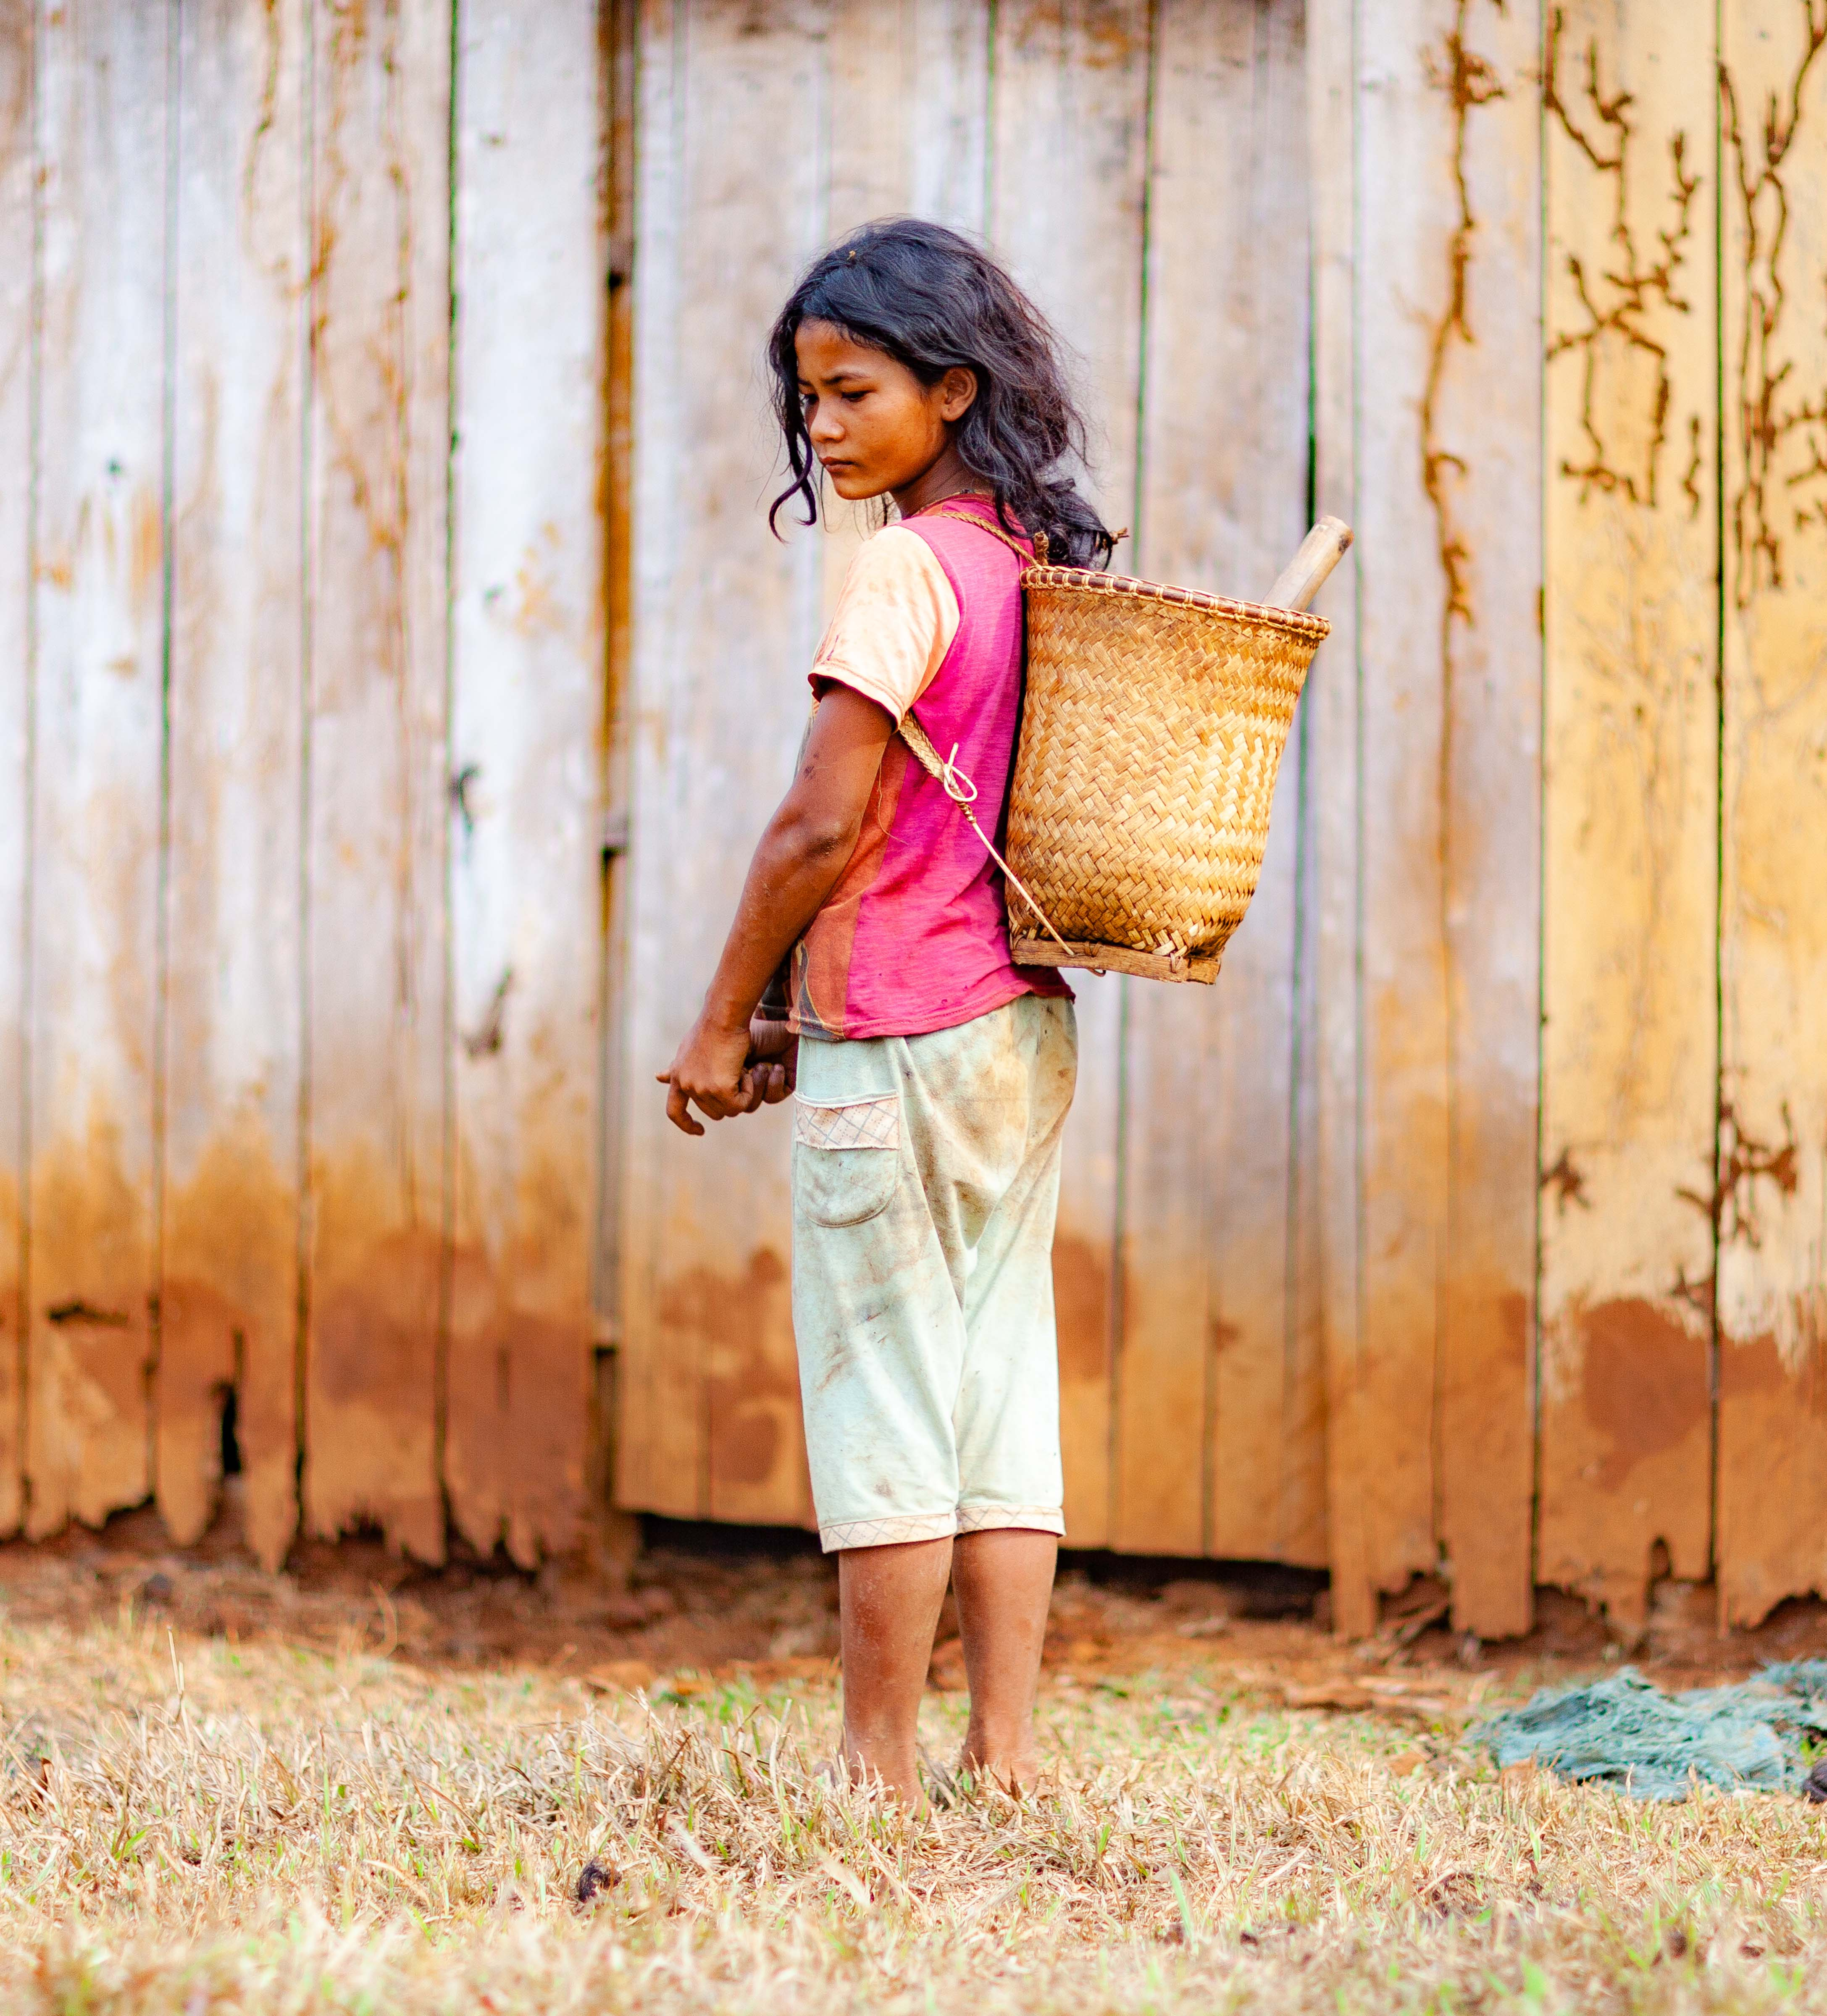 Cambodia, Mondol Kiri Prov, Girl With Basket, 2011, IMG 0791